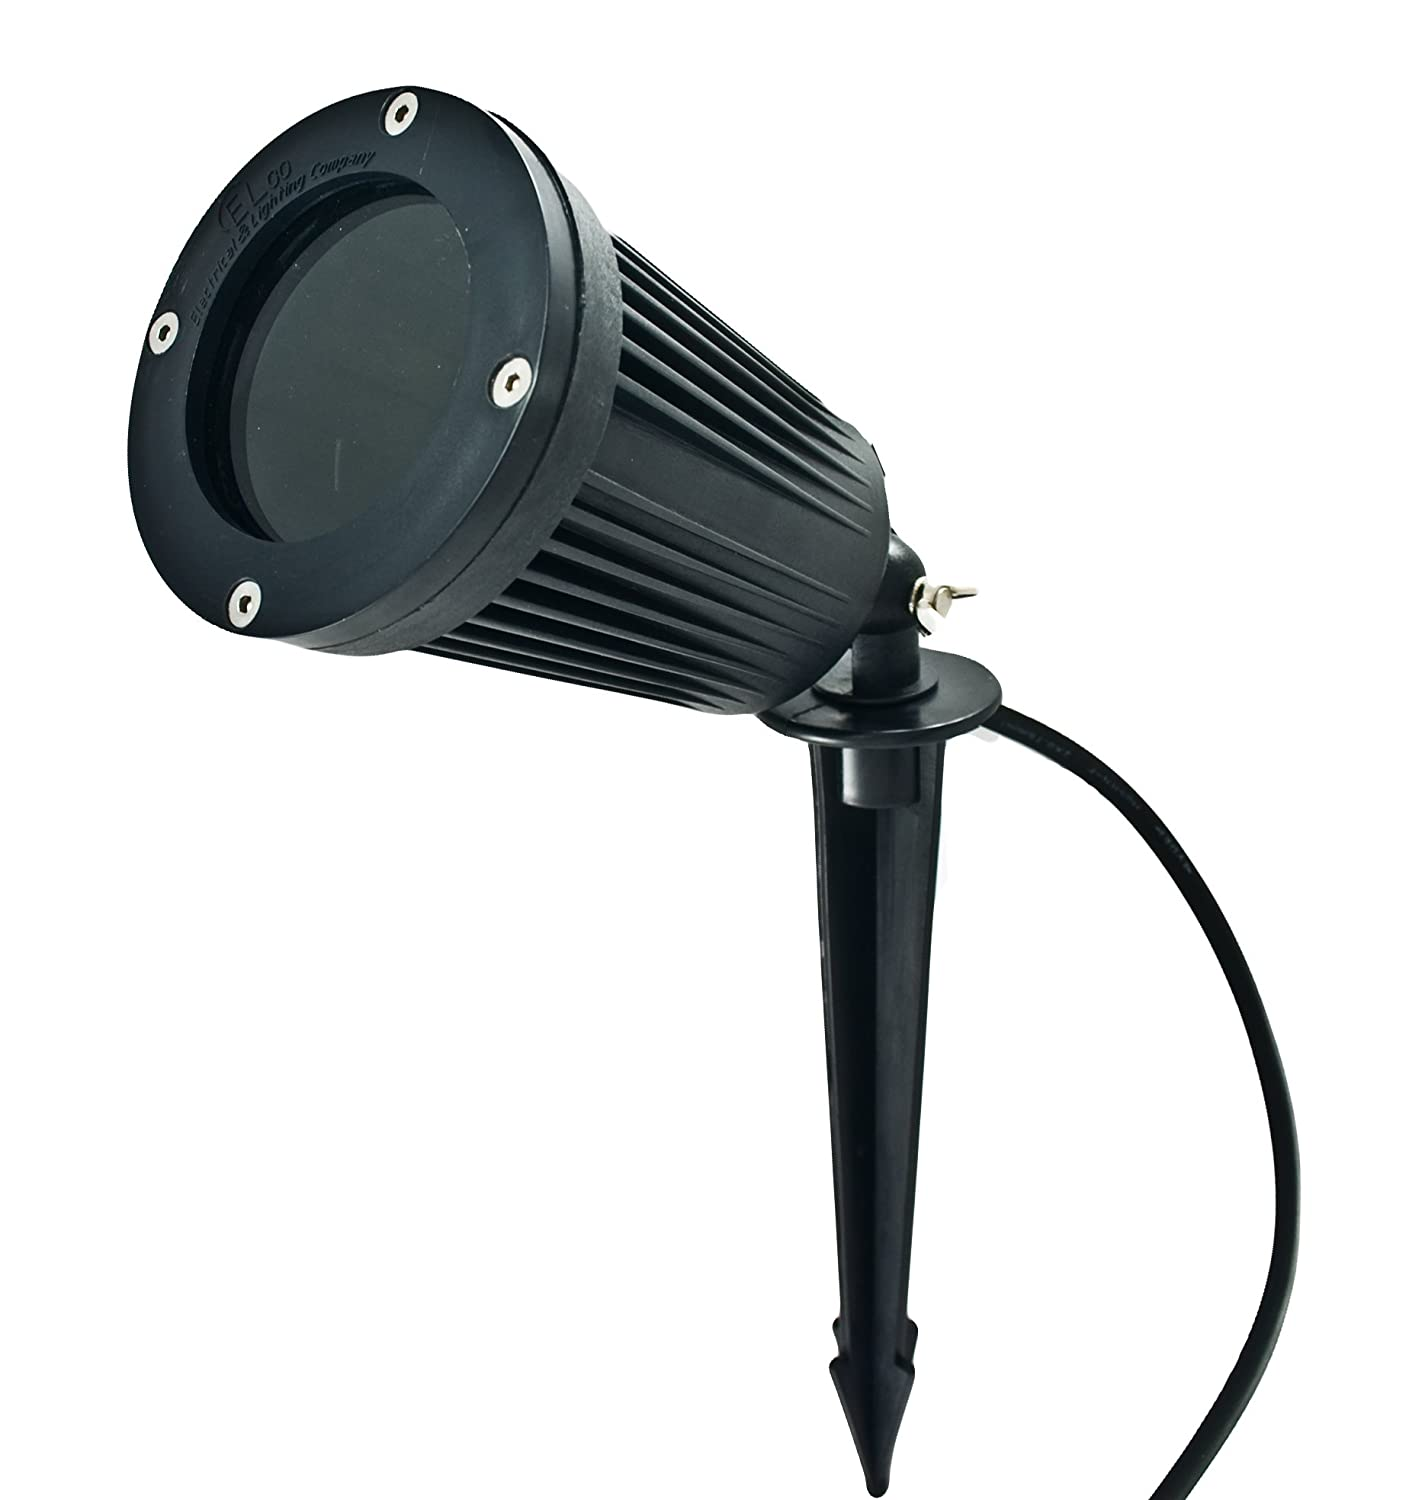 Garden GU10 240v 50W Spike Spotlight Light IP66 Amazoncouk